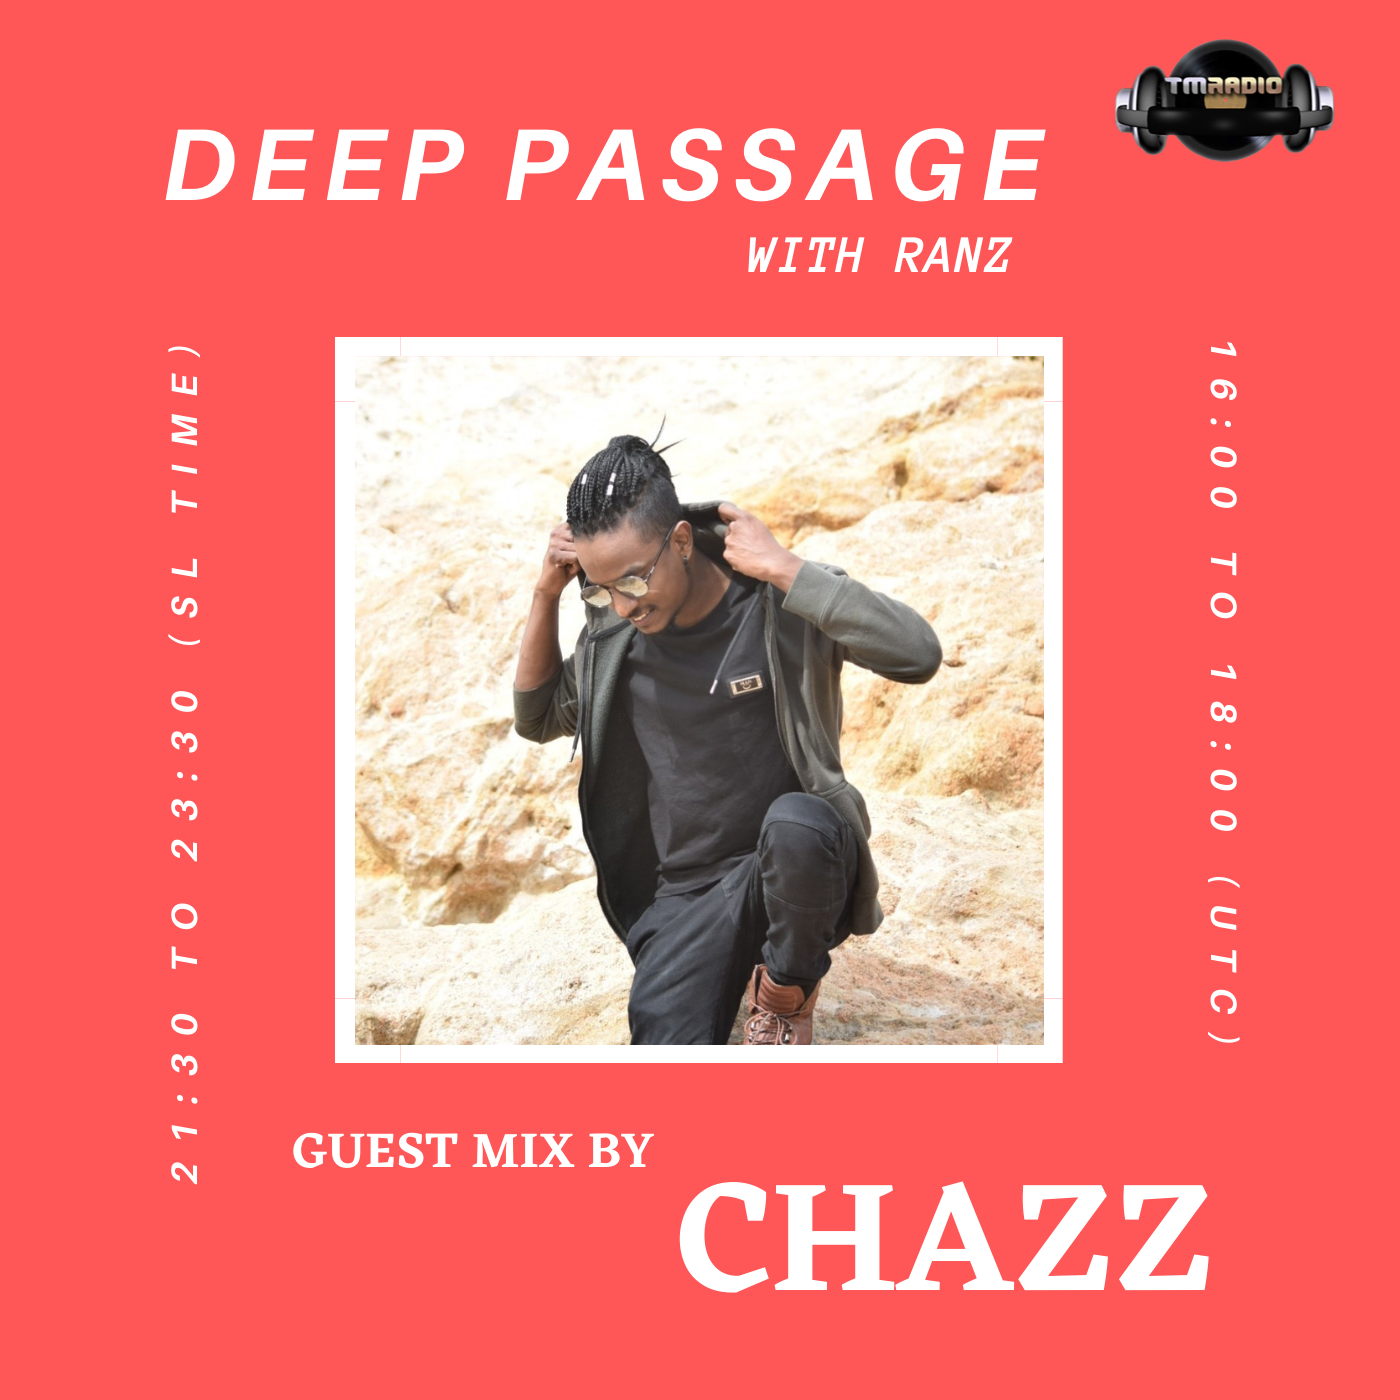 Next Episode DEEP PASSAGE WITH RANZ   TM RADIO SHOW   EP 043   Guest mix by CHAZZ (Sri Lanka) (premieres on November 1st)